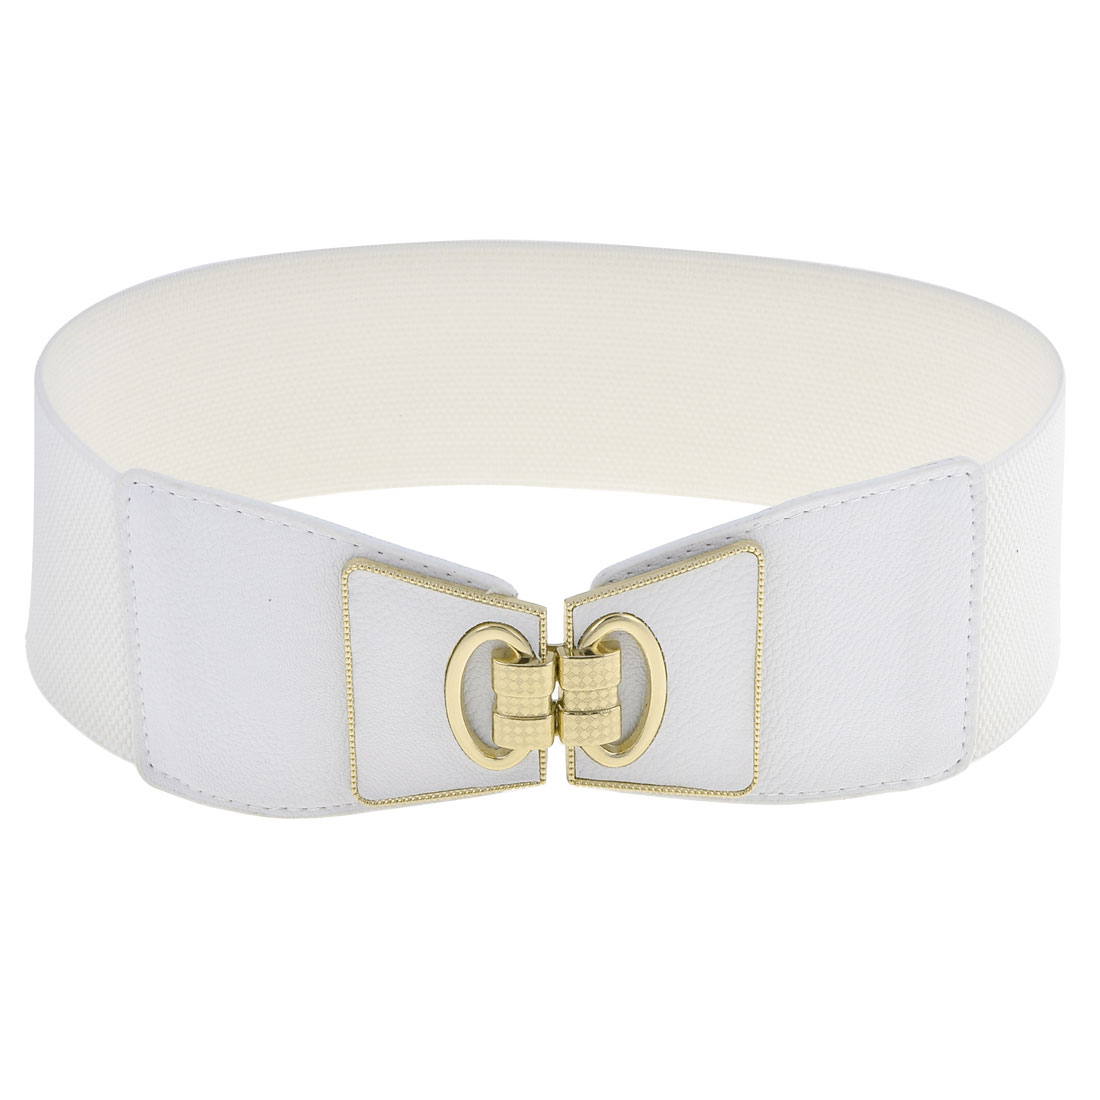 Women White Faux Leather Buckle Part 7.5cm Width Stretchy Band Cinch Belt